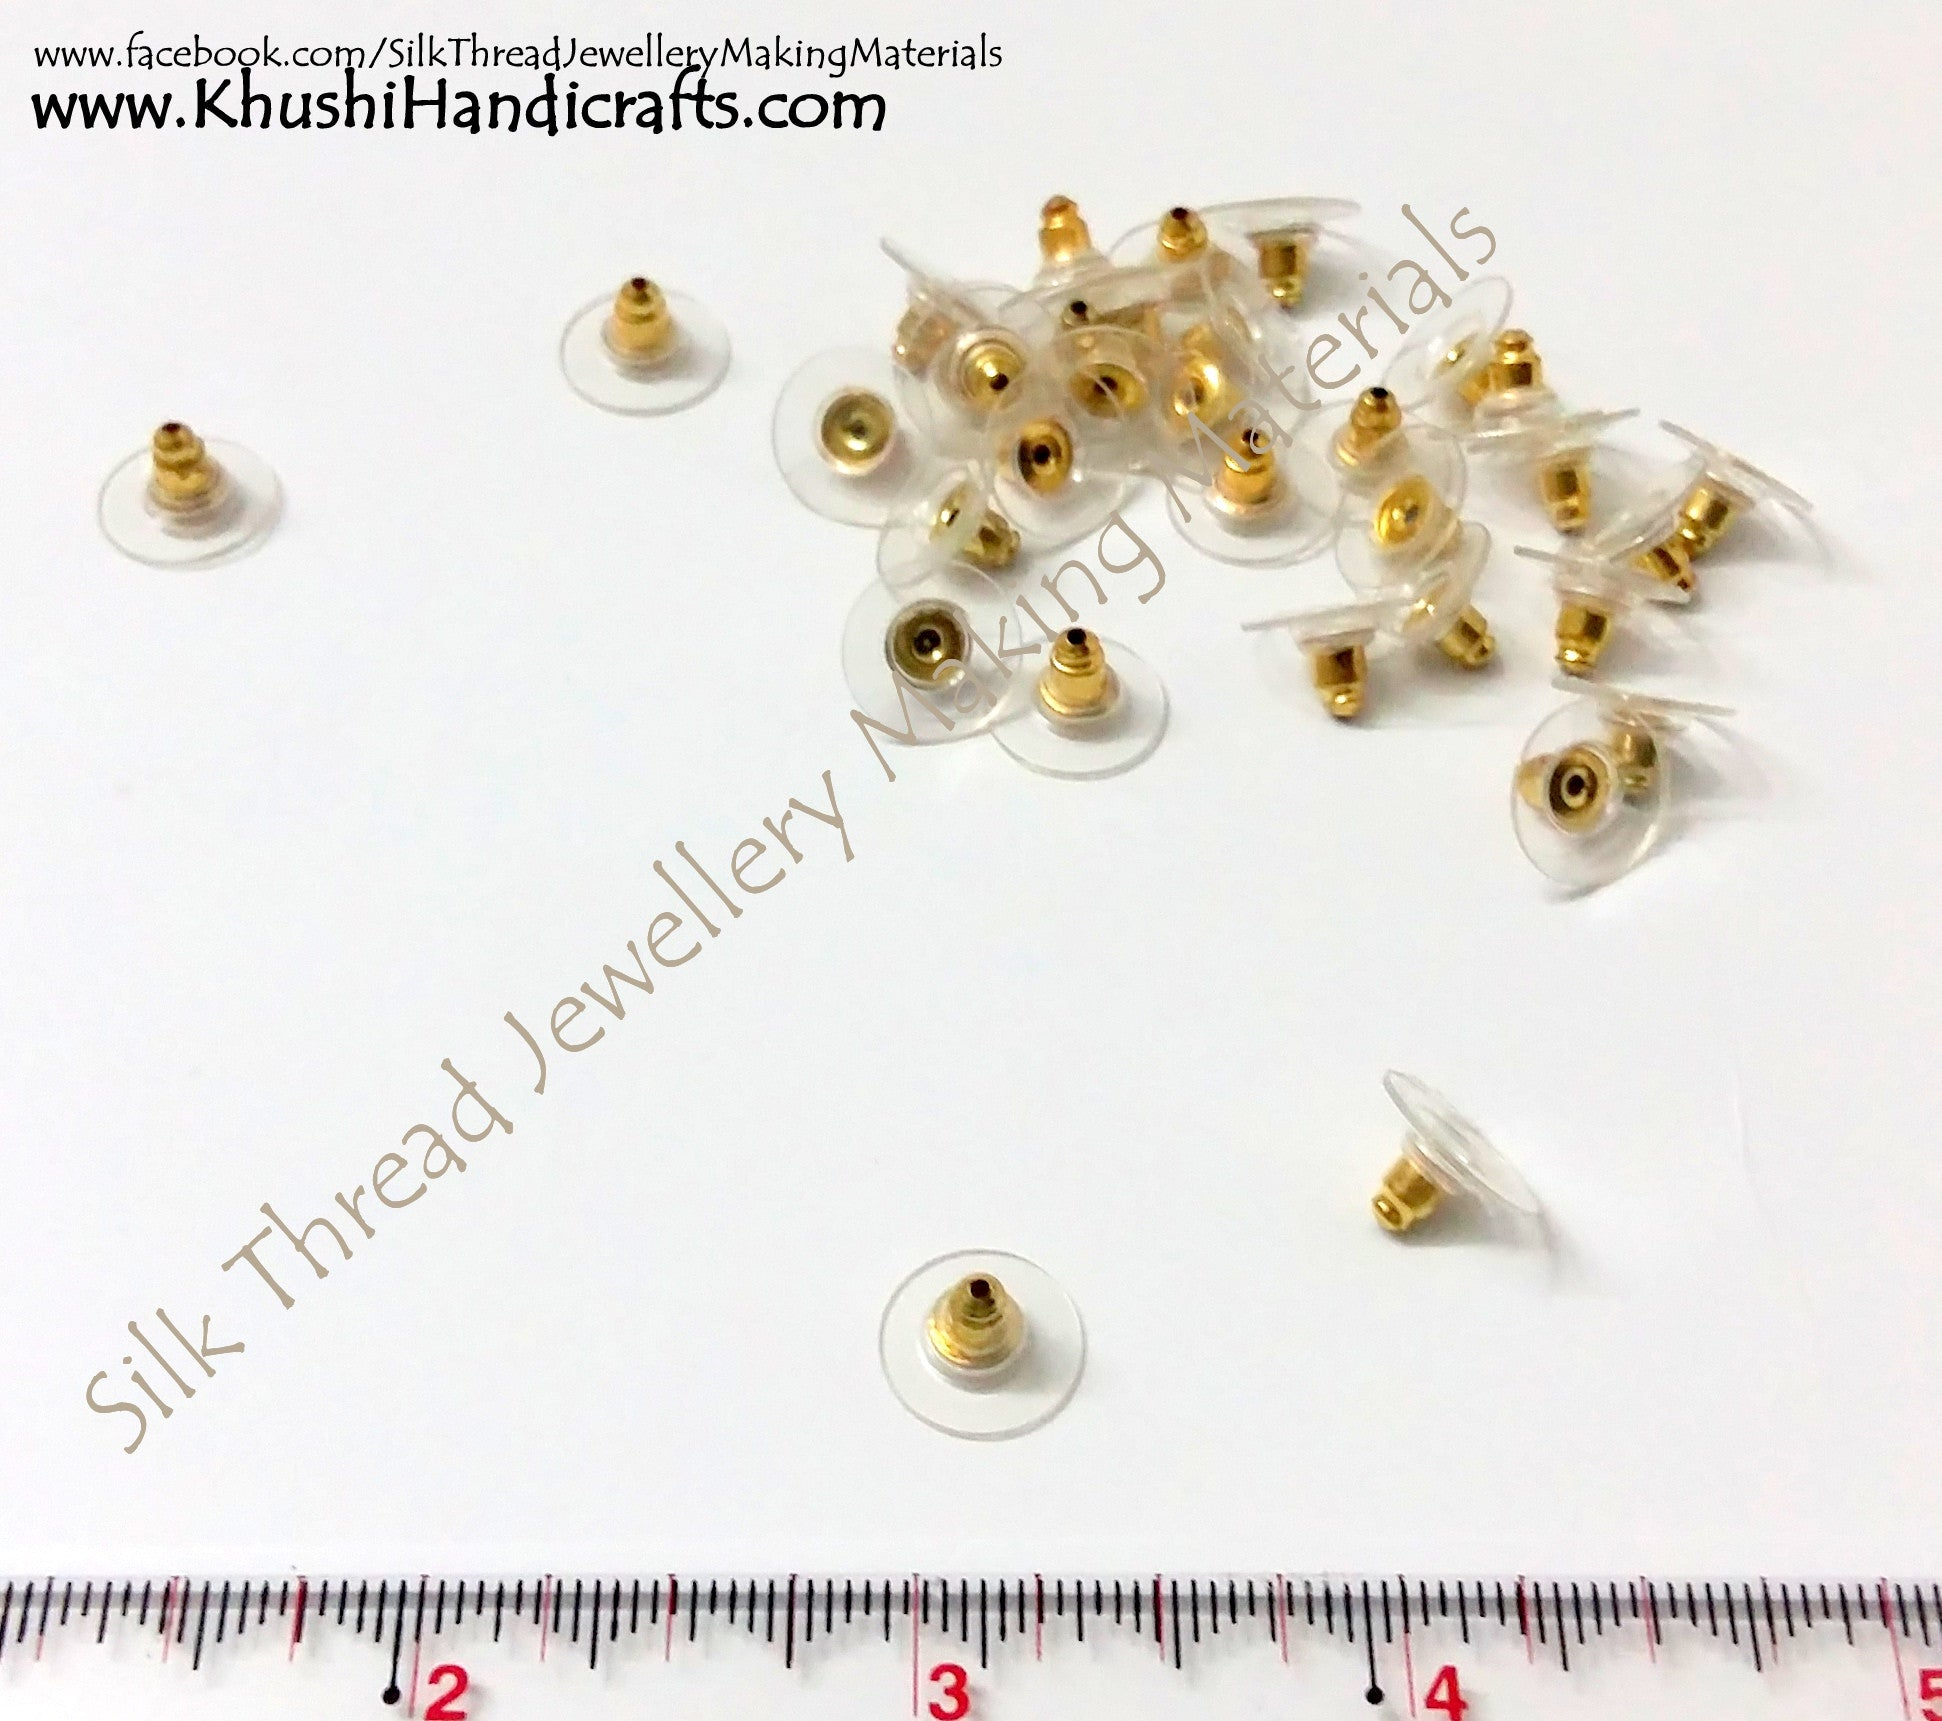 Stoppers/Stopper Pack of 10 pairs in Gold and Silver - Khushi Handmade Jewellery